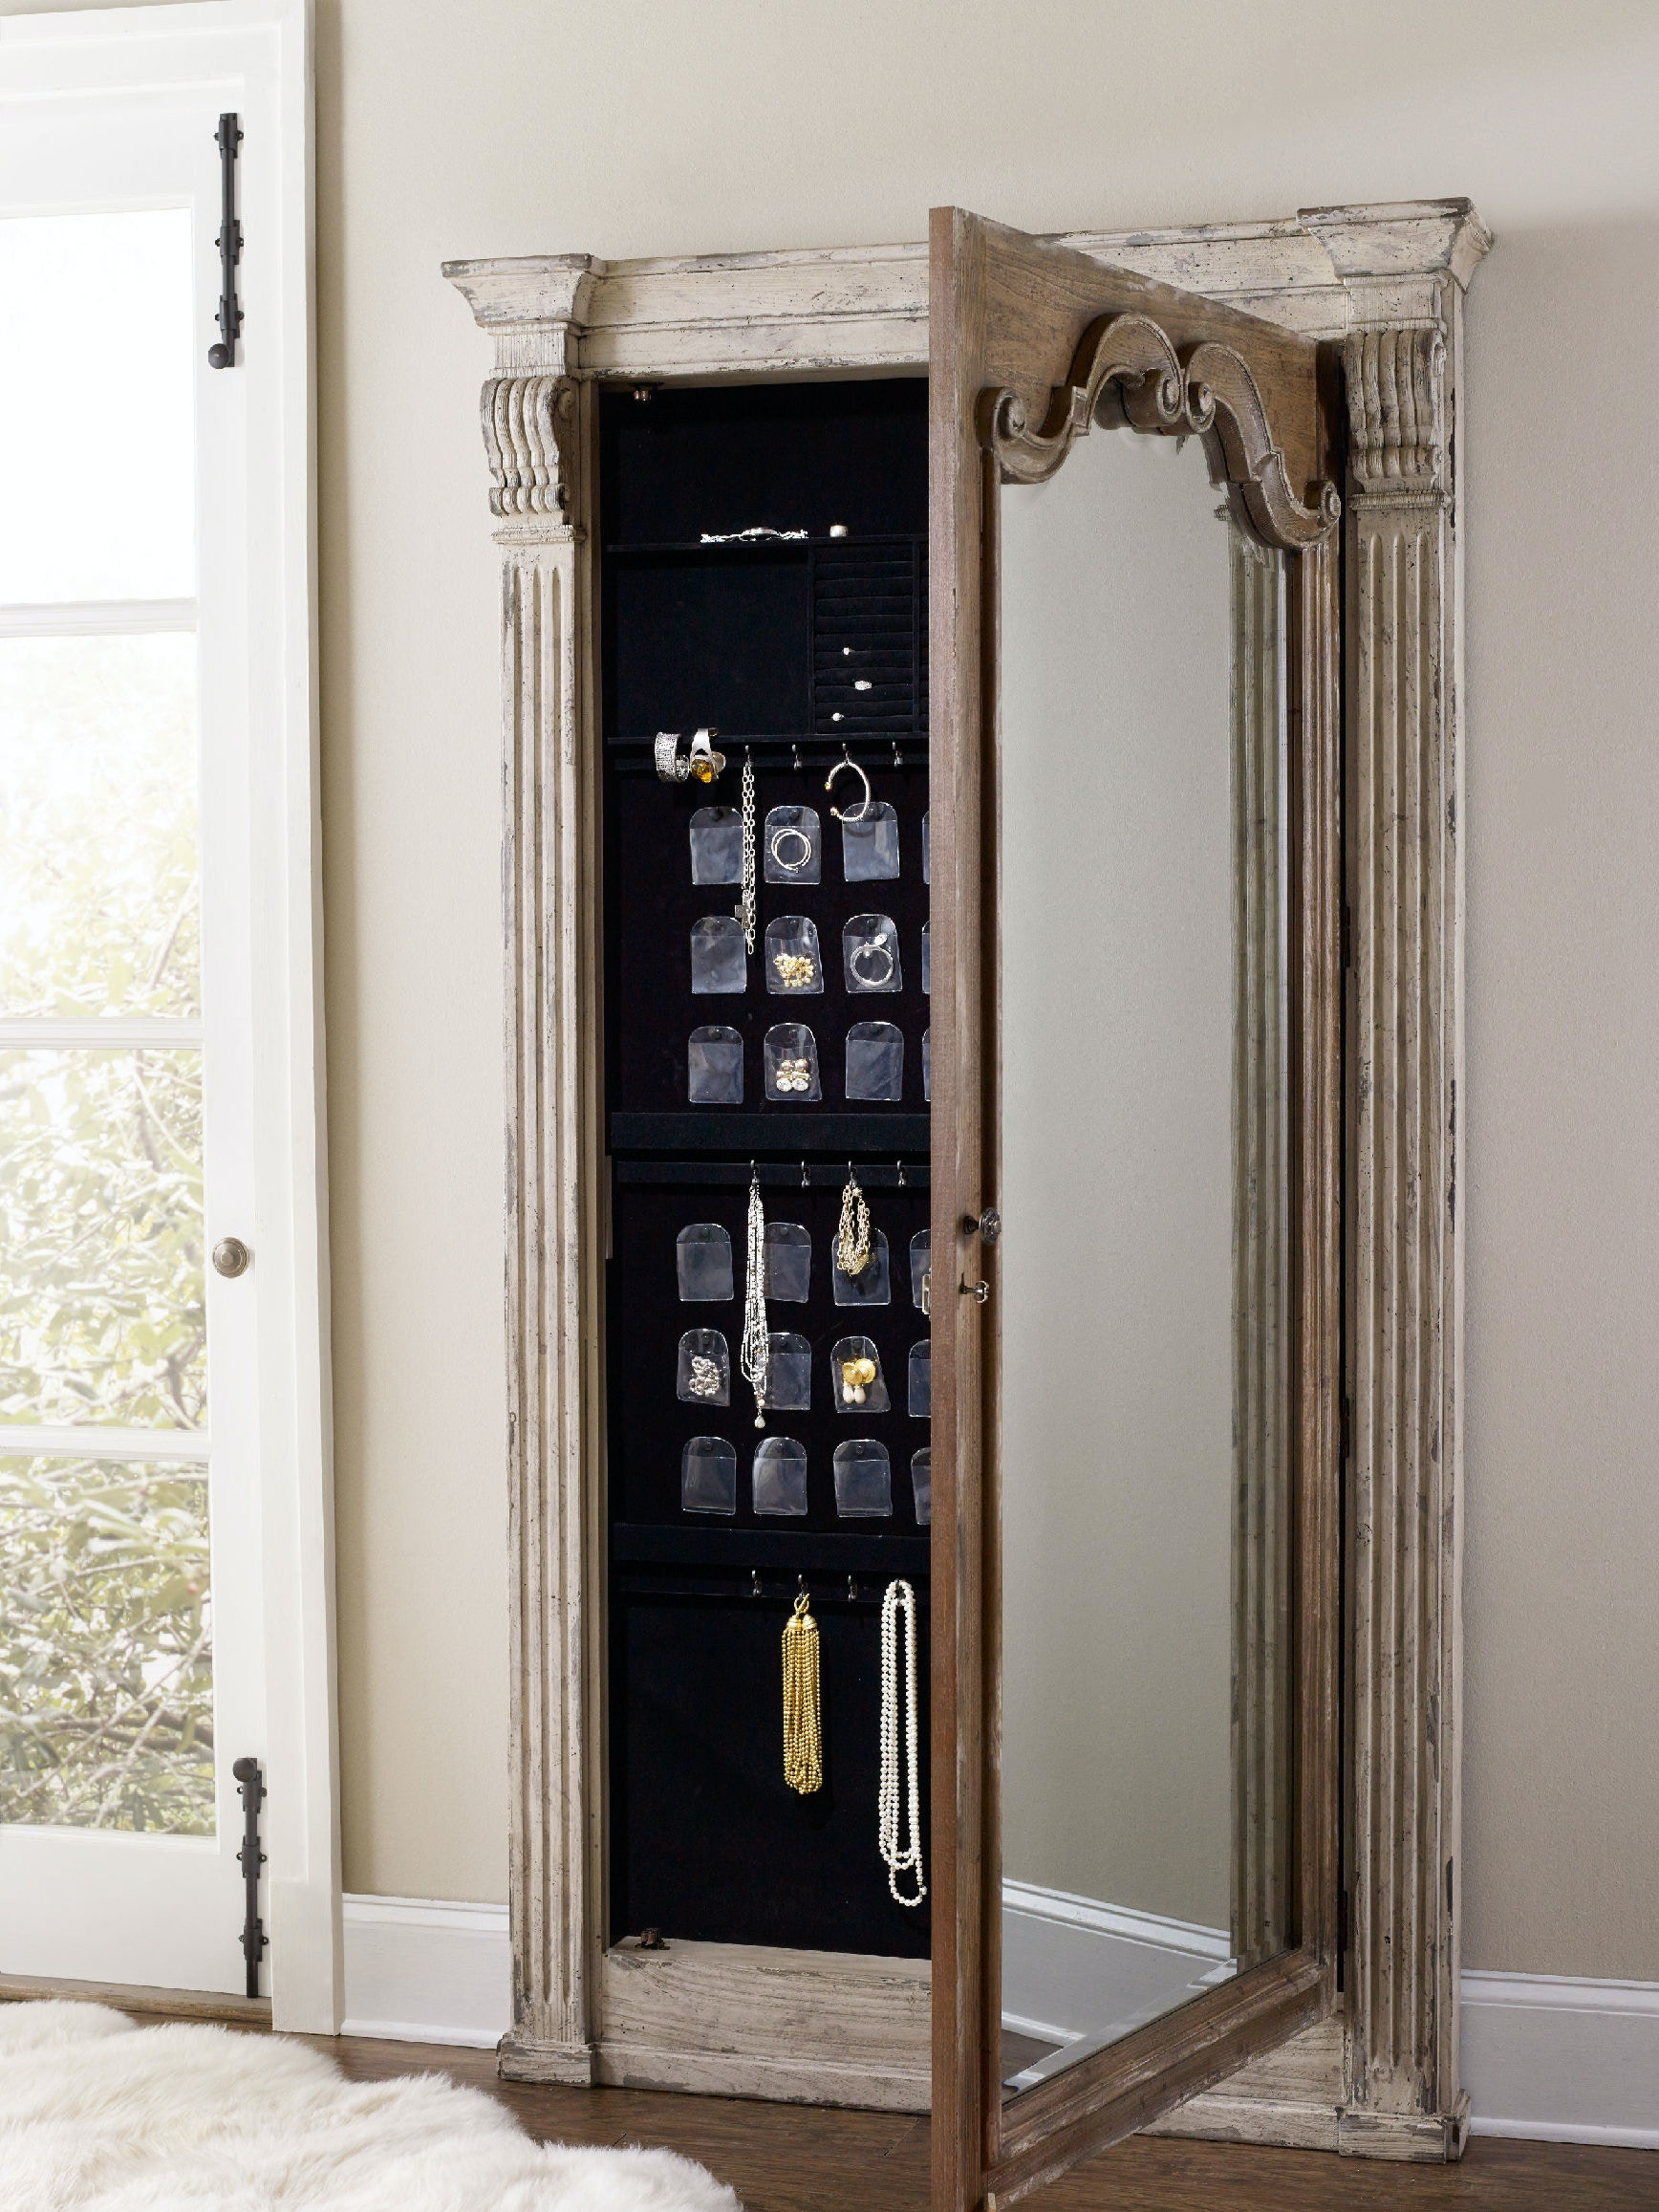 Ordinaire Hooker Furniture Chatelet Floor Mirror W/Jewelry Armoire Storage 5351 50003